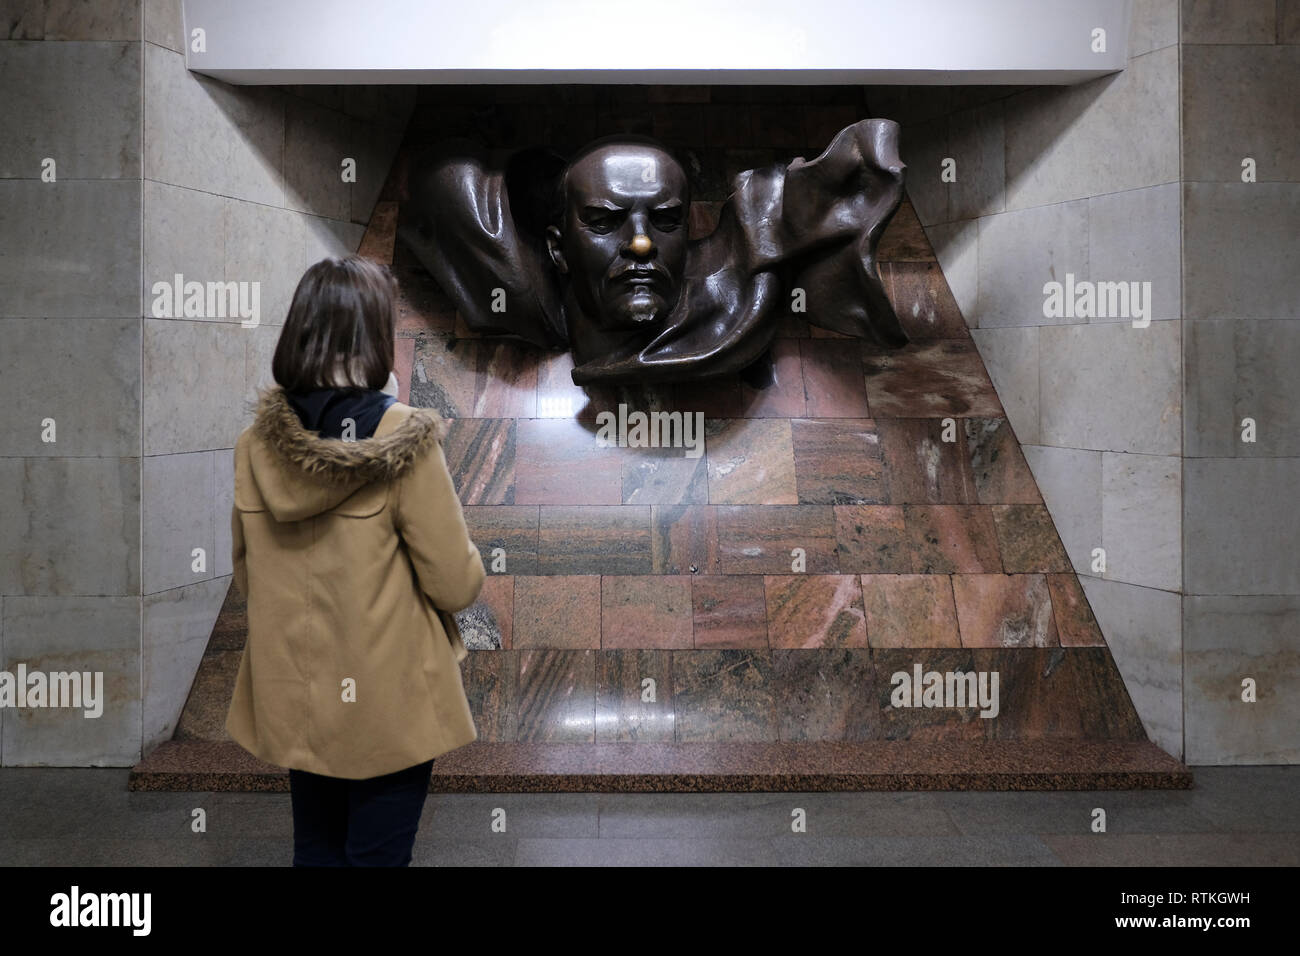 A young Belarusian woman lookinf at the statue of Vladimir Lenin placed inside  Plosca Lienina (Lenin Square) Metro station in Independence Square in the city of Minsk, capital of Belarus Stock Photo